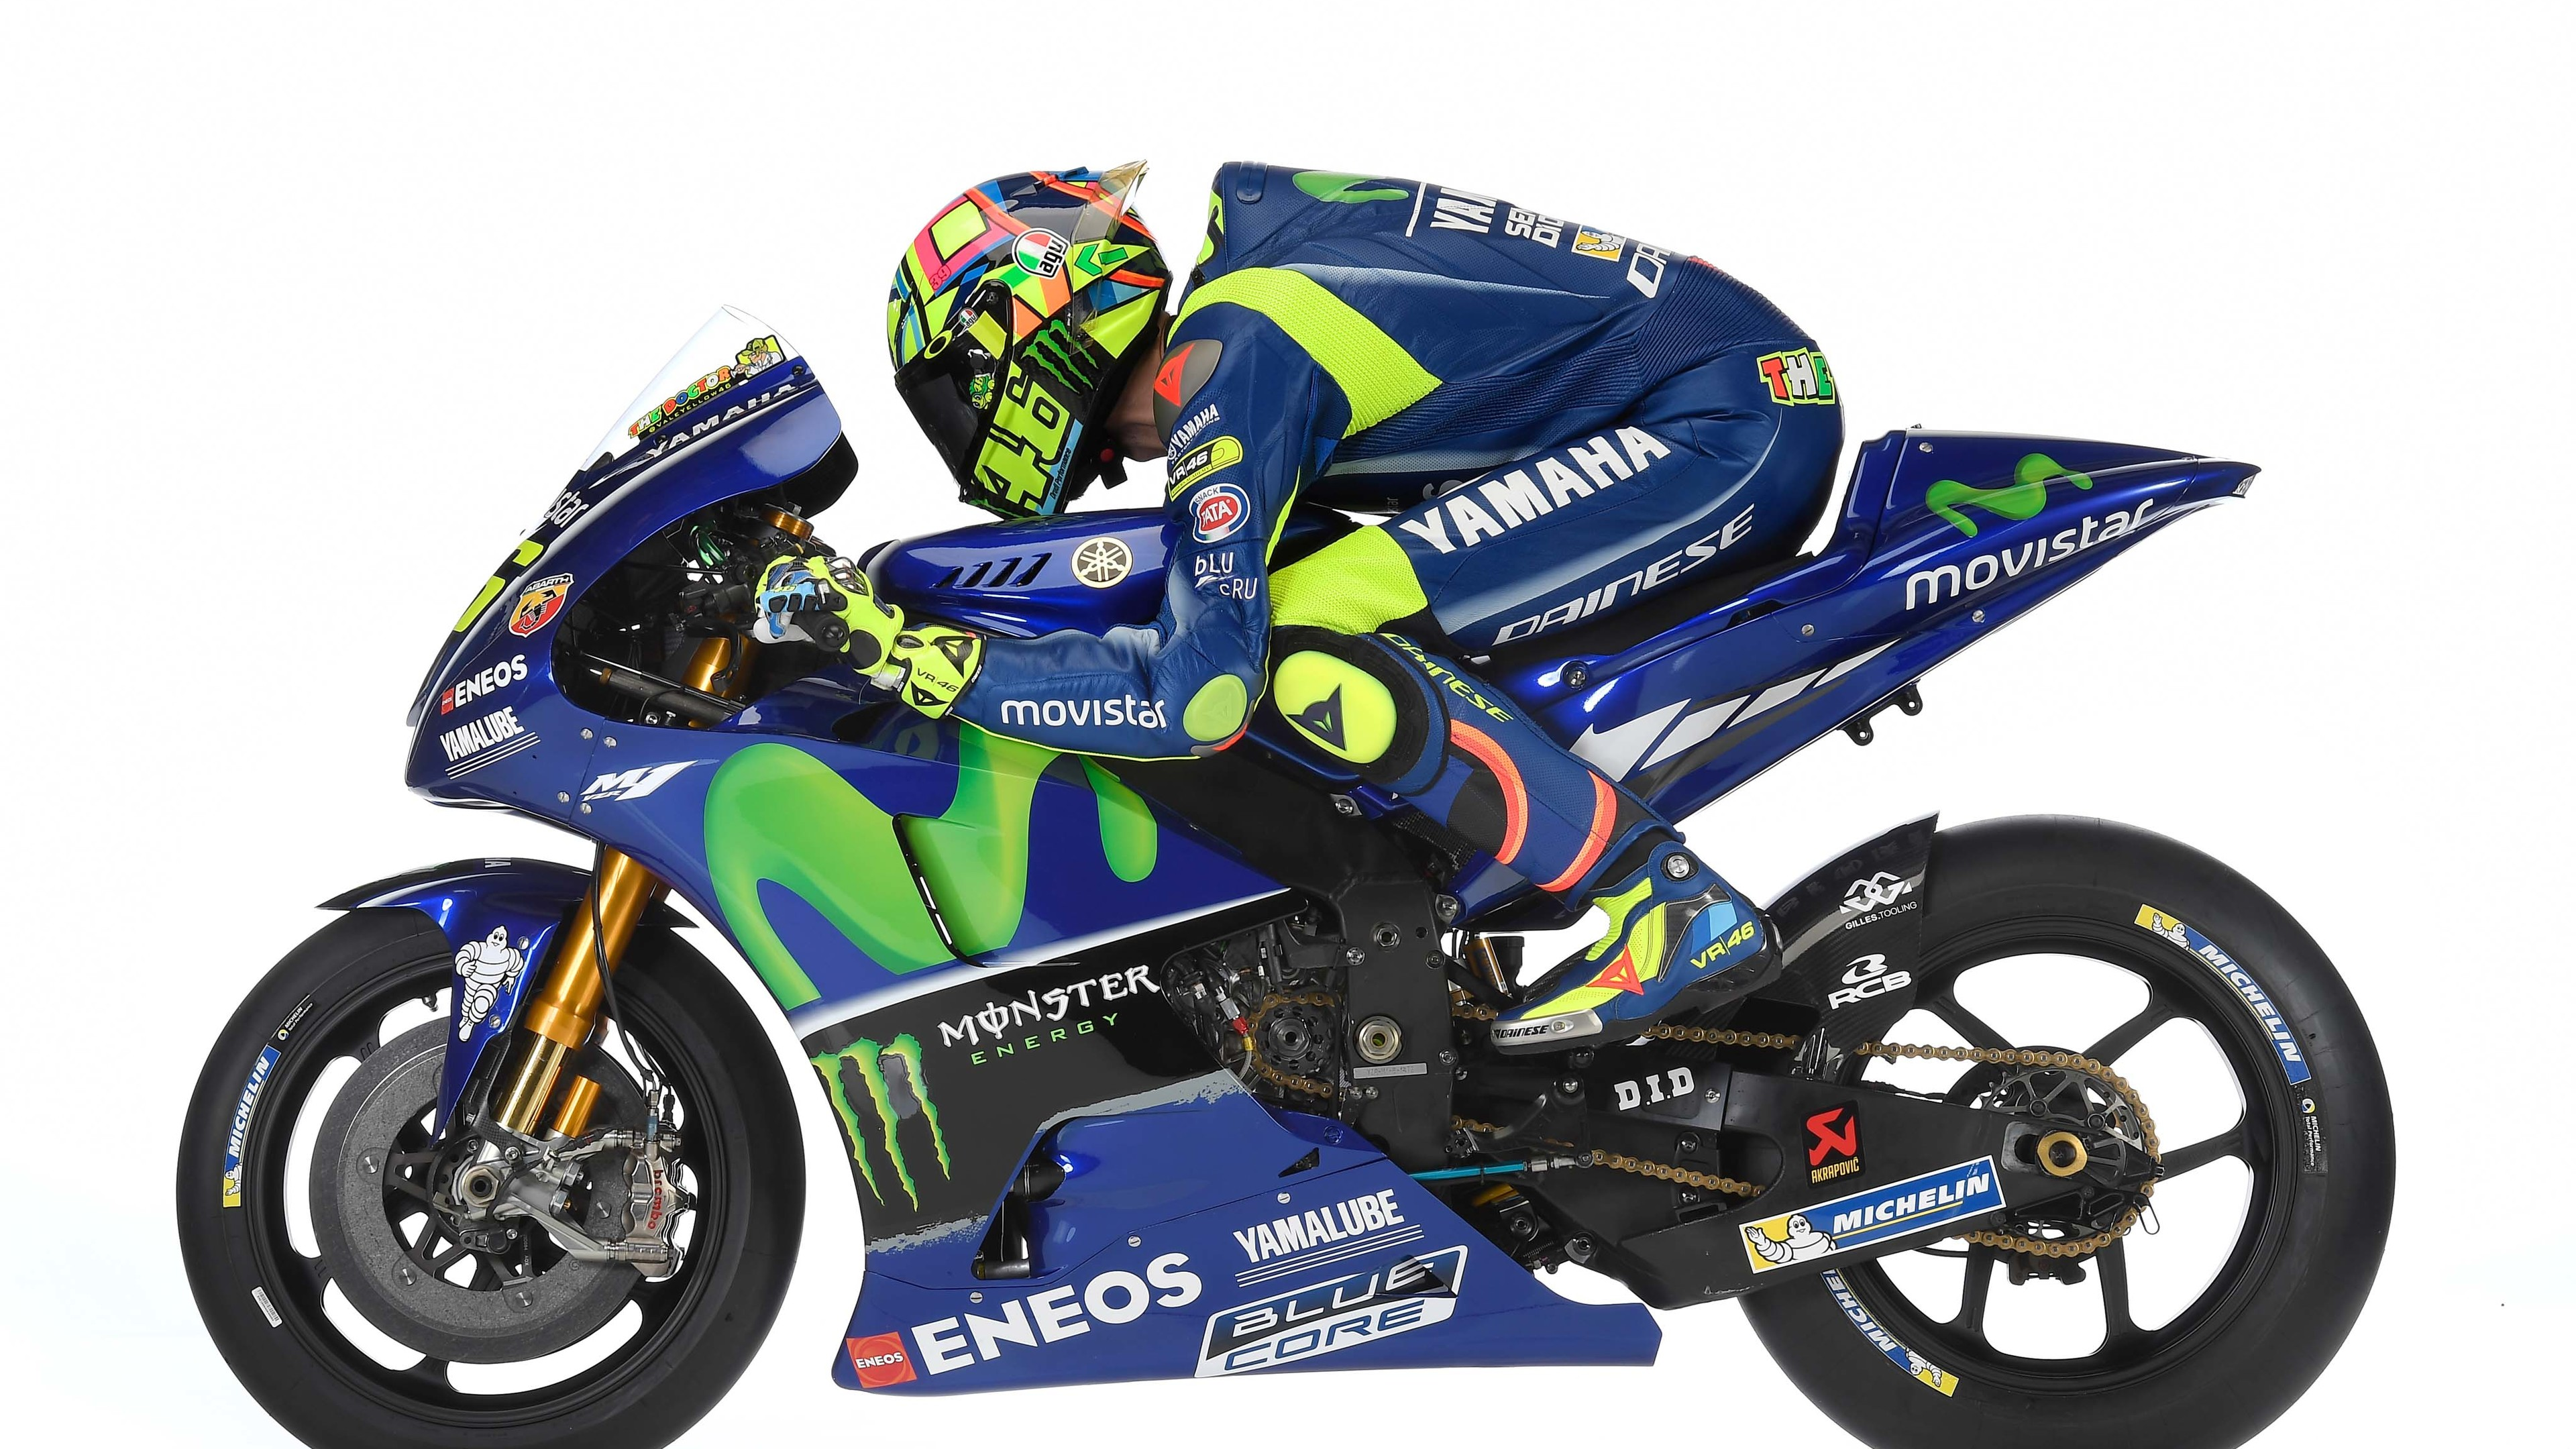 Wallpaper 4k Motogp Valentino Rossi Yamaha Yzr M1 4k Wallpapers Bikes Wallpapers Hd Wallpapers Moto Gp Wallpapers Yamaha Wallpapers Yamaha Yzr M1 Wallpapers